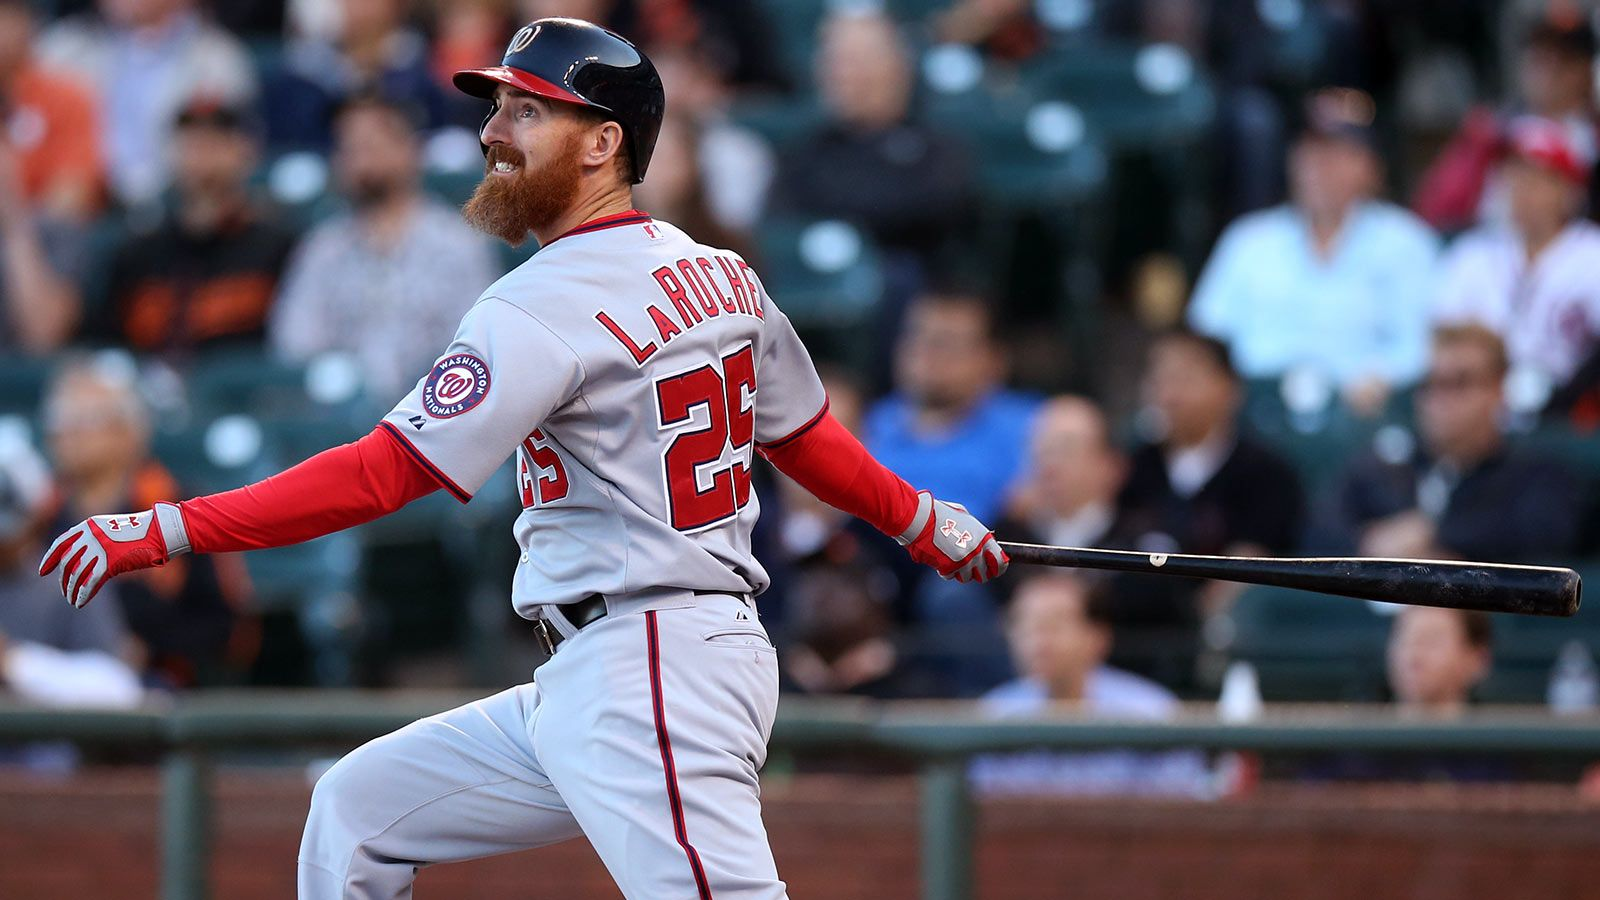 So long Nats! LaRoche agrees to deal with White Sox Adam LaRoche agrees to contract with White Sox